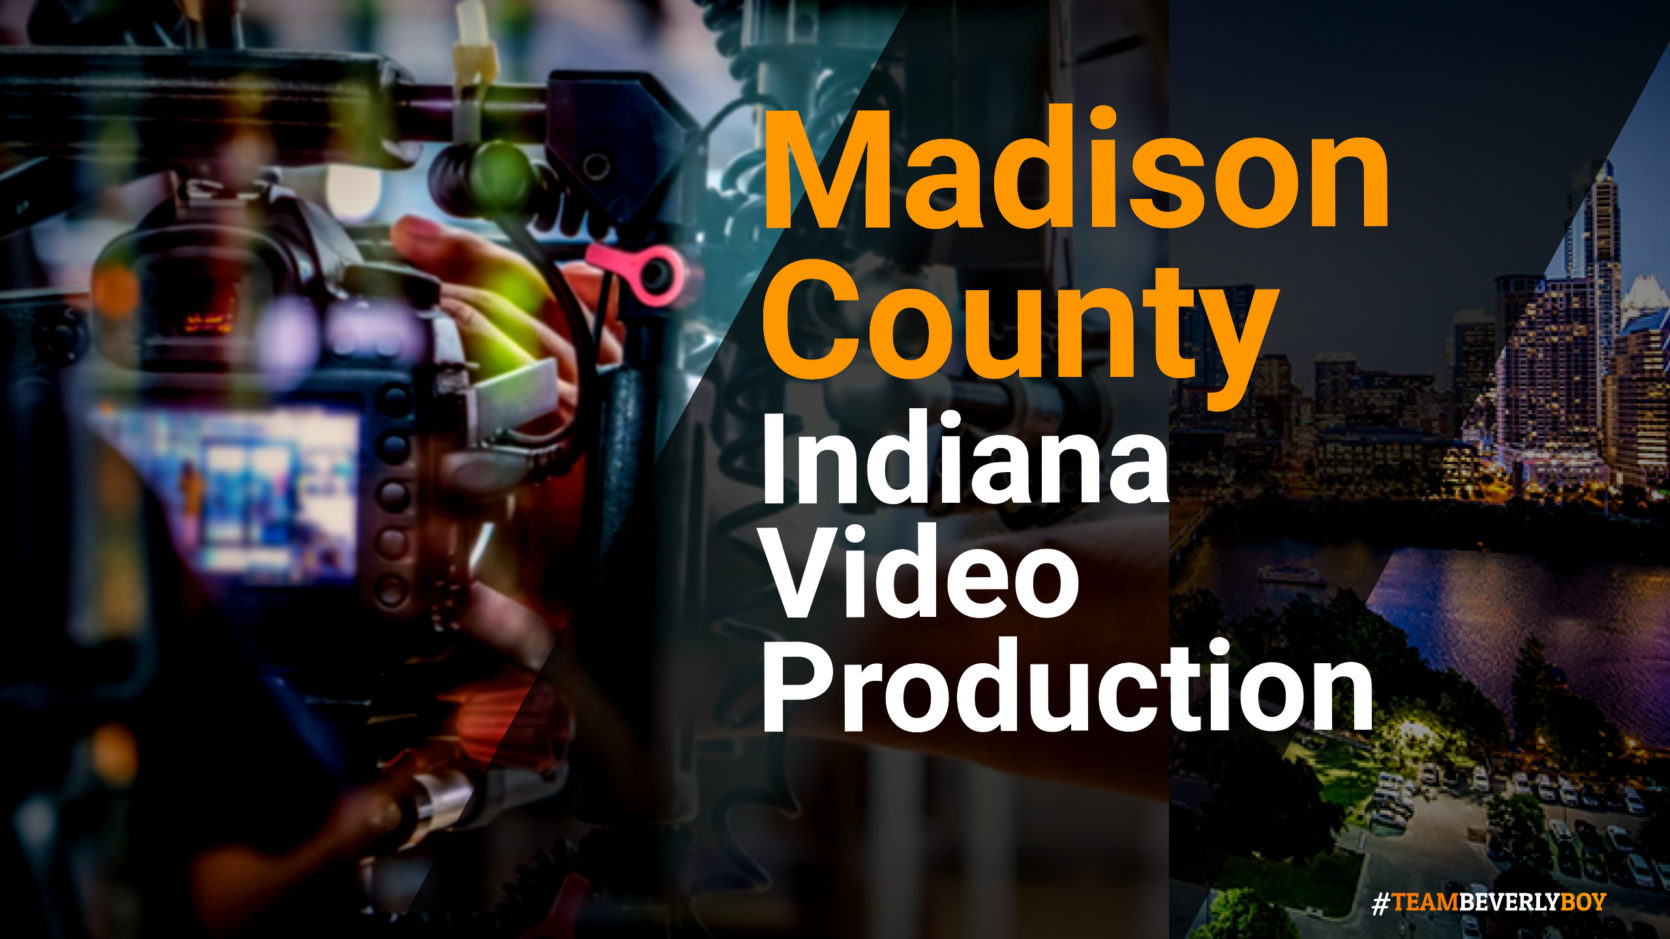 Madison County Video Production